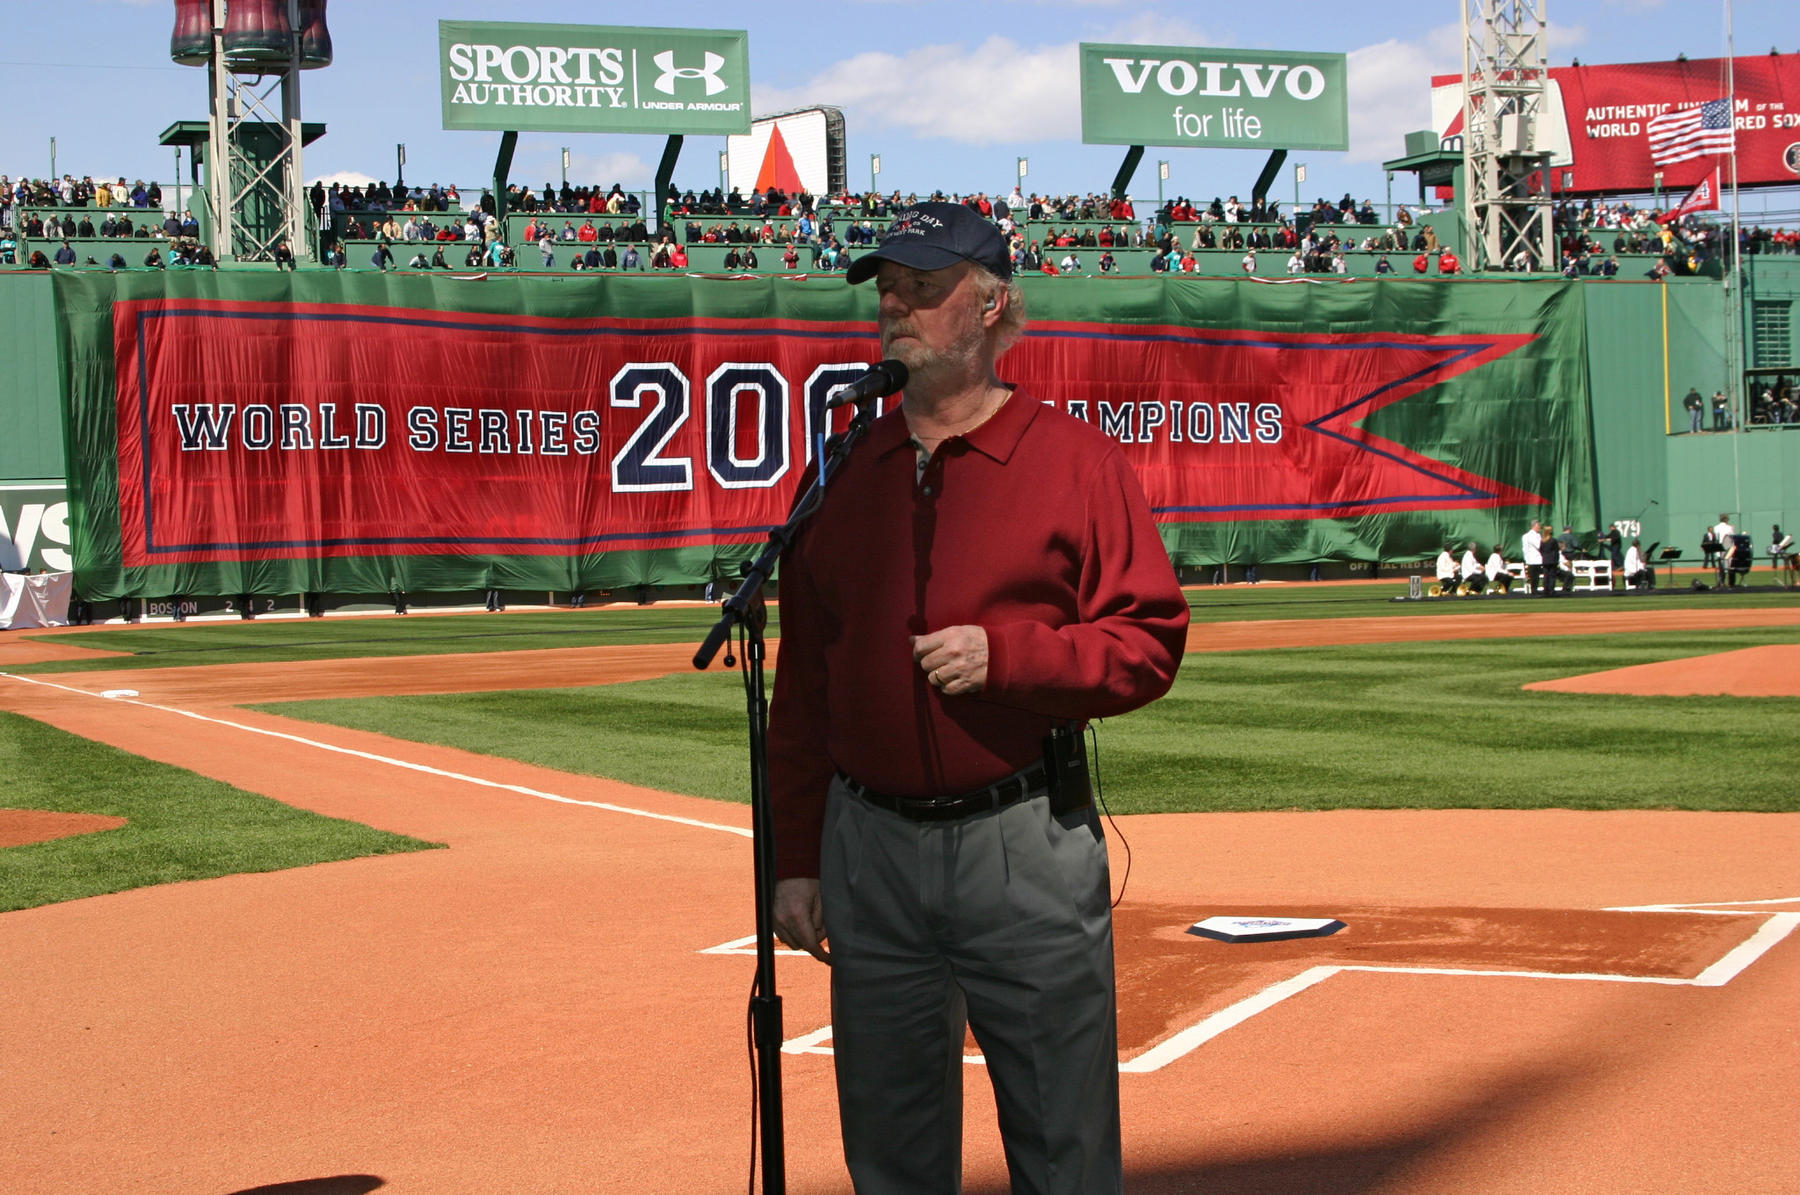 """Terry Cashman performing """"This is For Teddy Ballgame"""" at Fenway Park on April 11, 2005, just before the World Series ring ceremony. BL-204.2013.3 (Laura Fieber-Minogue / National Baseball Hall of Fame Library)"""